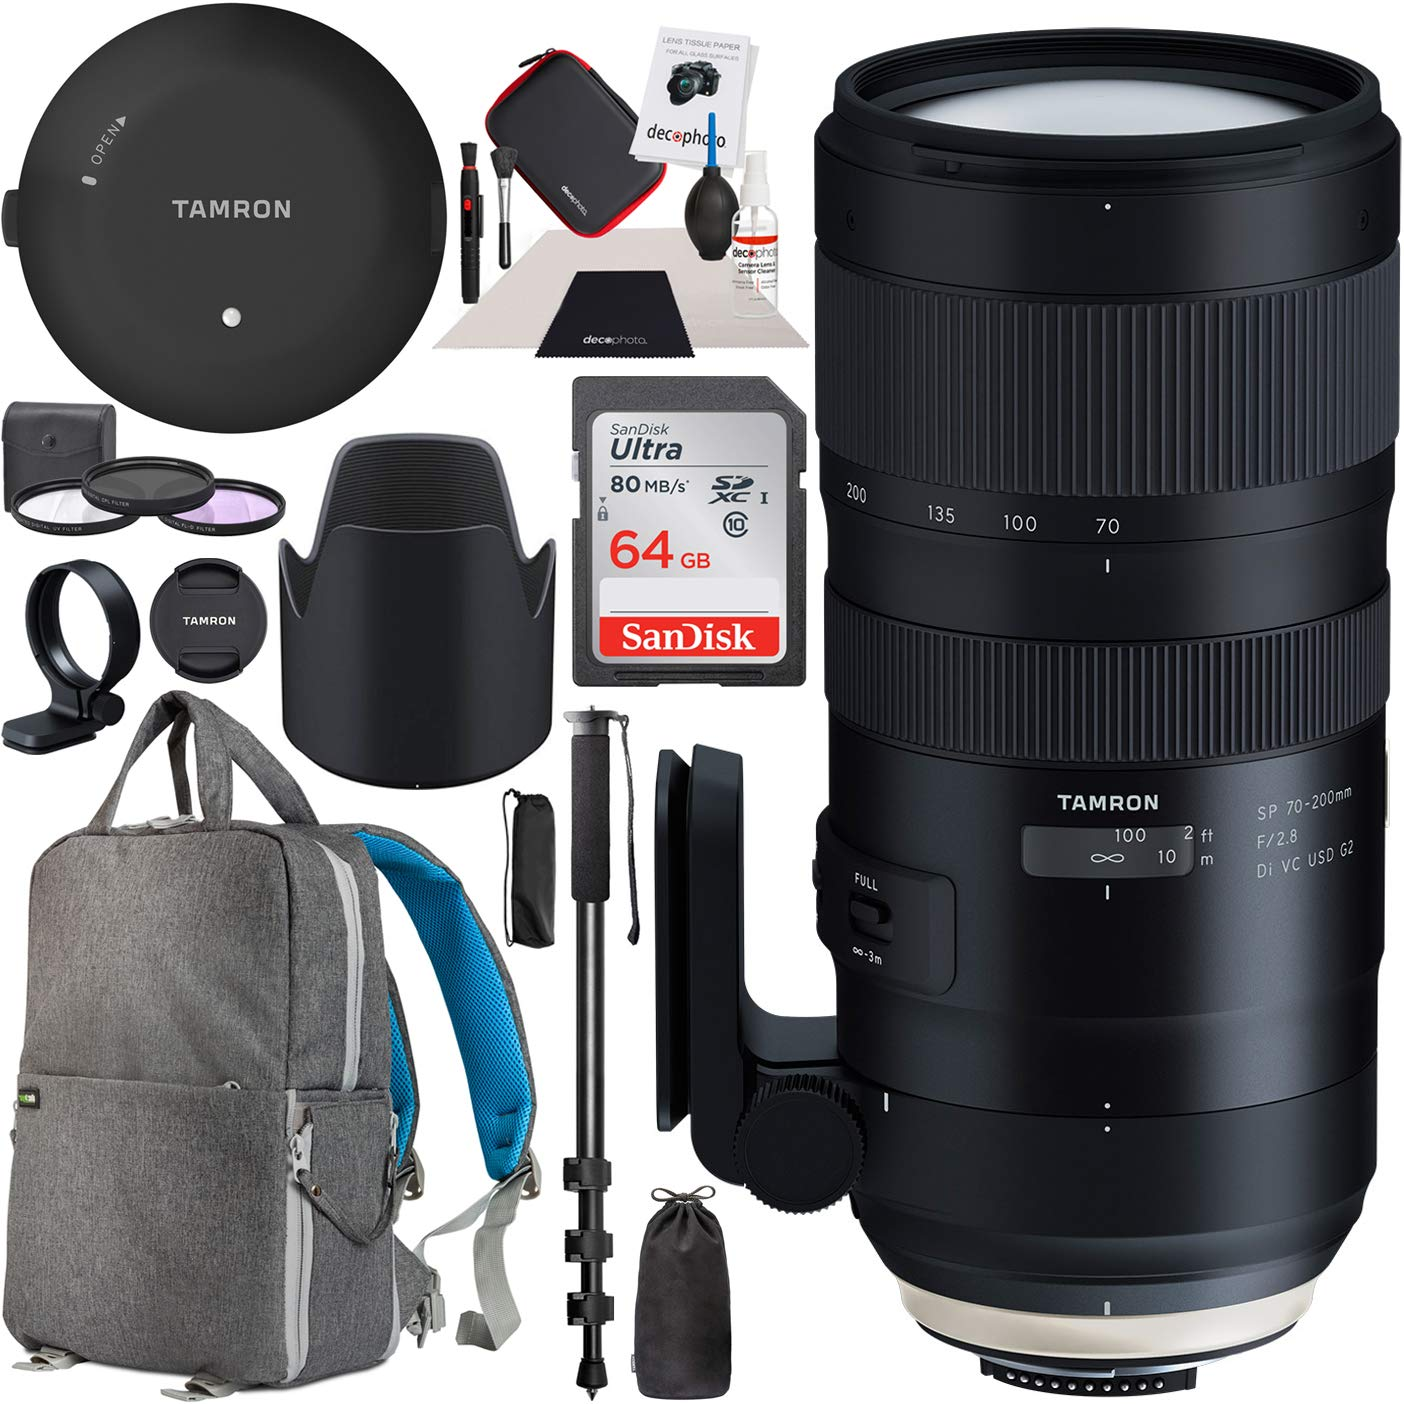 Tamron SP 70-200mm F/2.8 Di VC USD G2 Lens for Canon EF Mount AFA025C-700 TAP-in Console + 77mm Deluxe Filter Kit and Deco Gear Photography Backpack Pro Bundle by Tamron